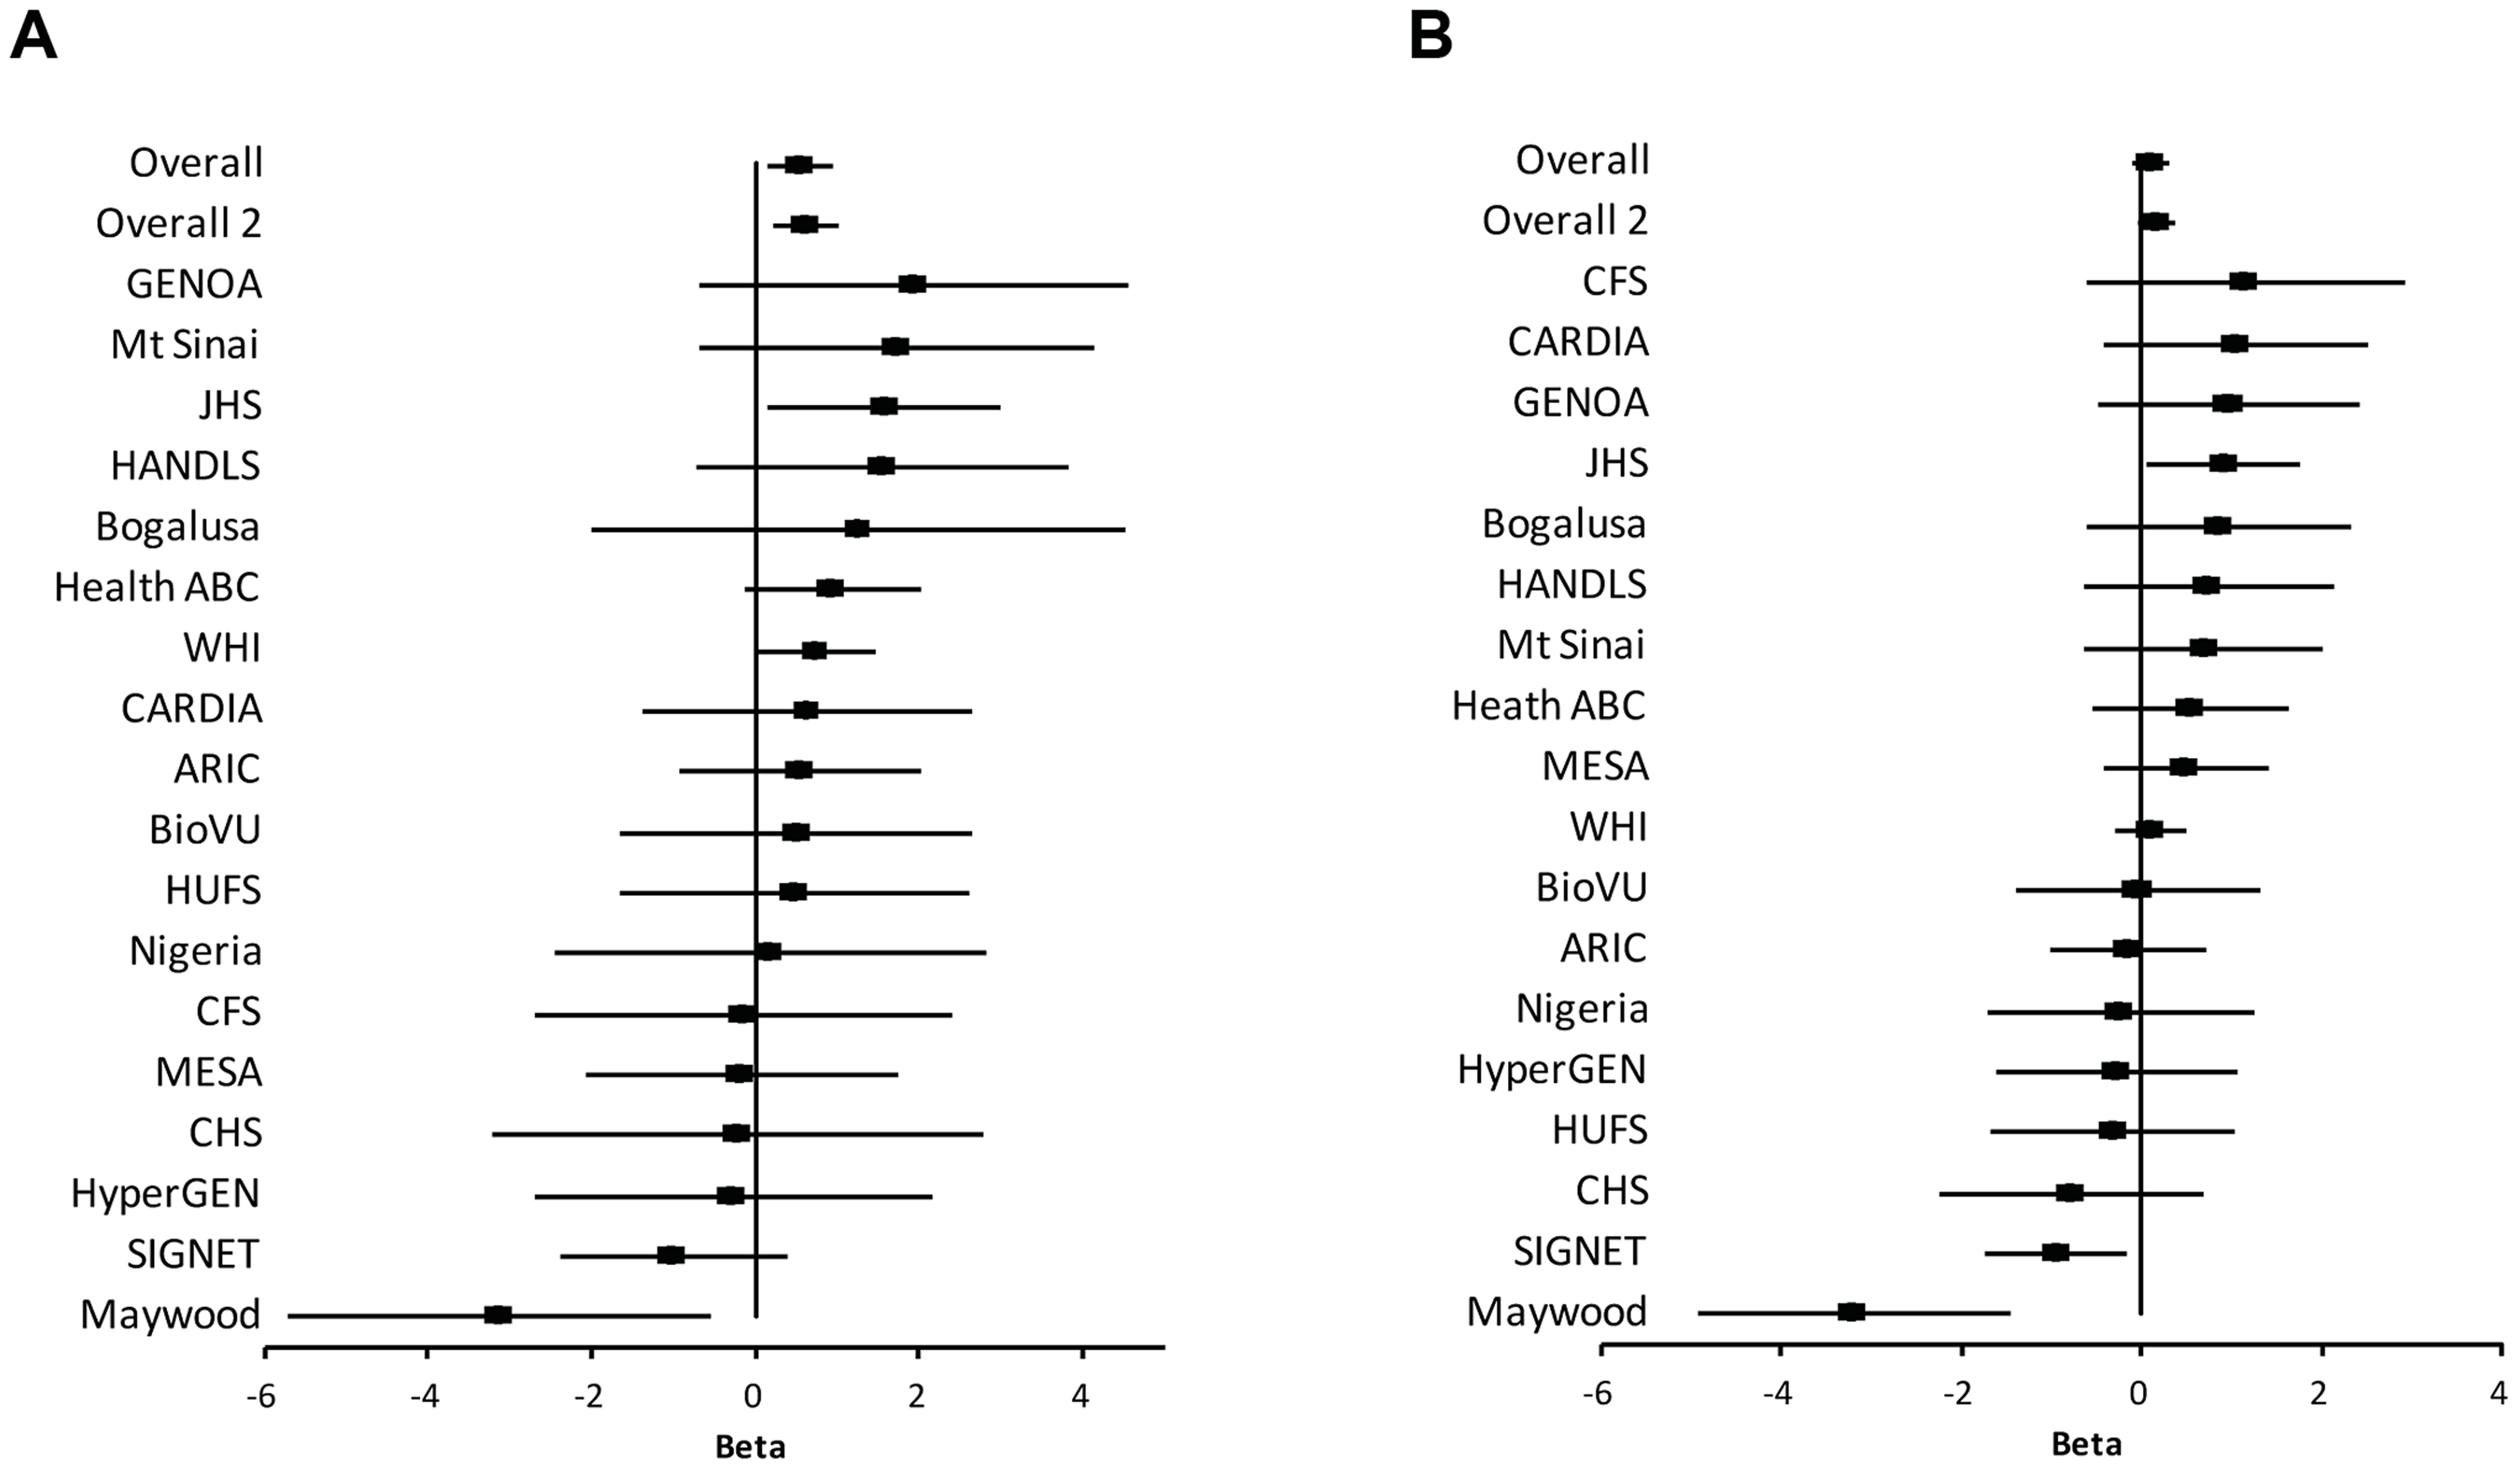 Association of SNP rs2272996 with SBP (A) and DBP (B) for each cohort.